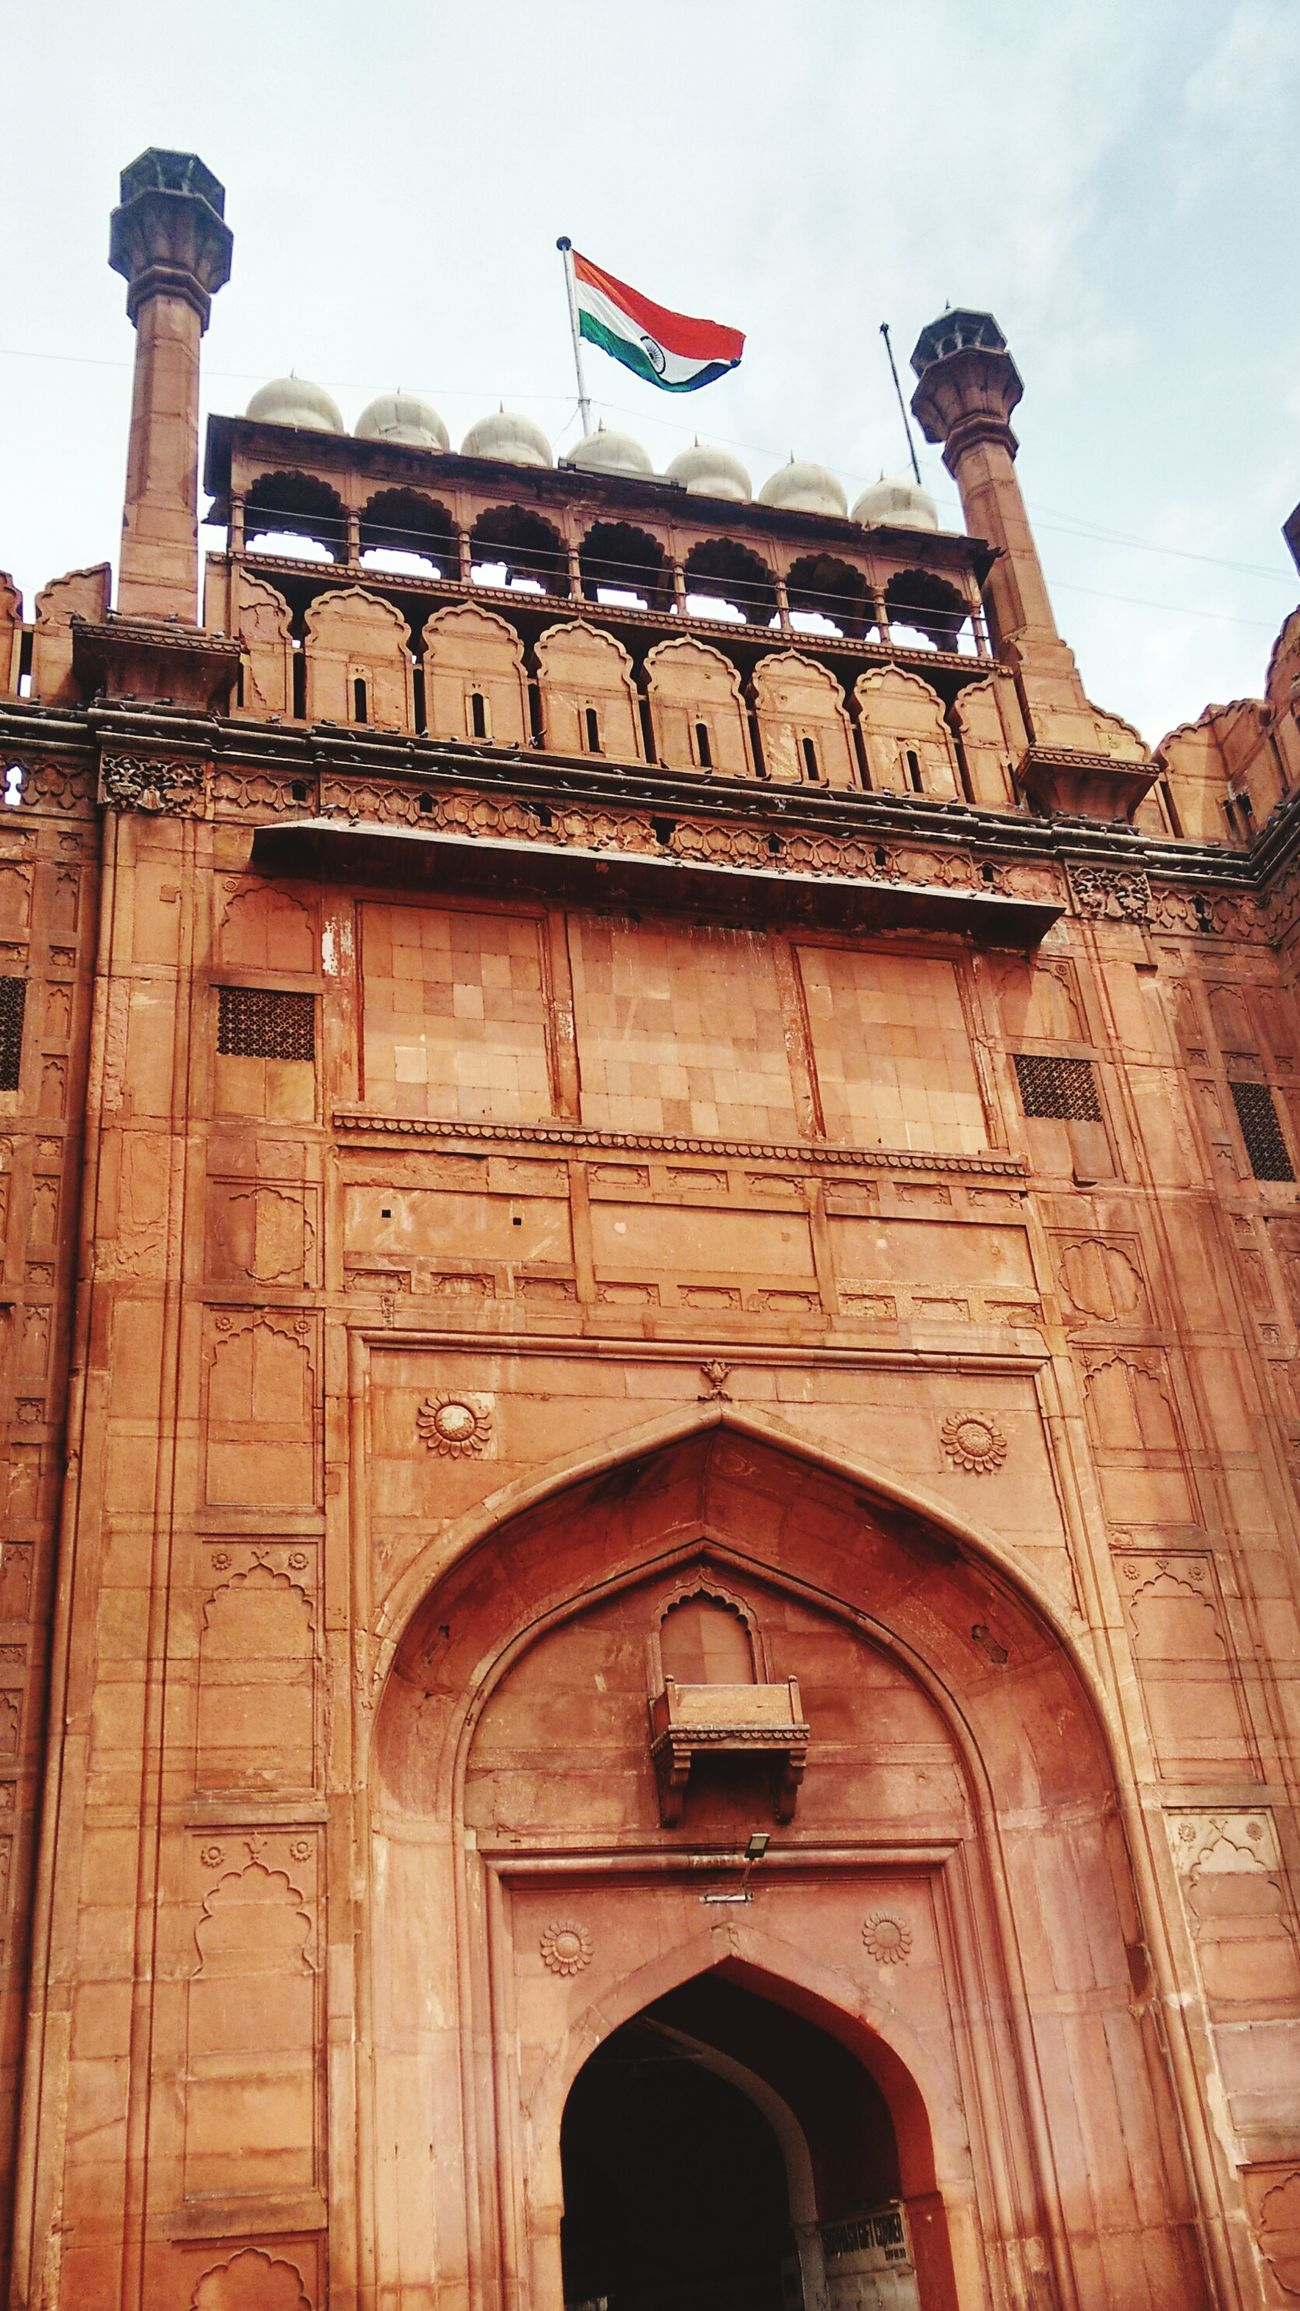 Sightseeing Historical Sights Chandnichowk Phone Camera Photography Redfort Indianflag